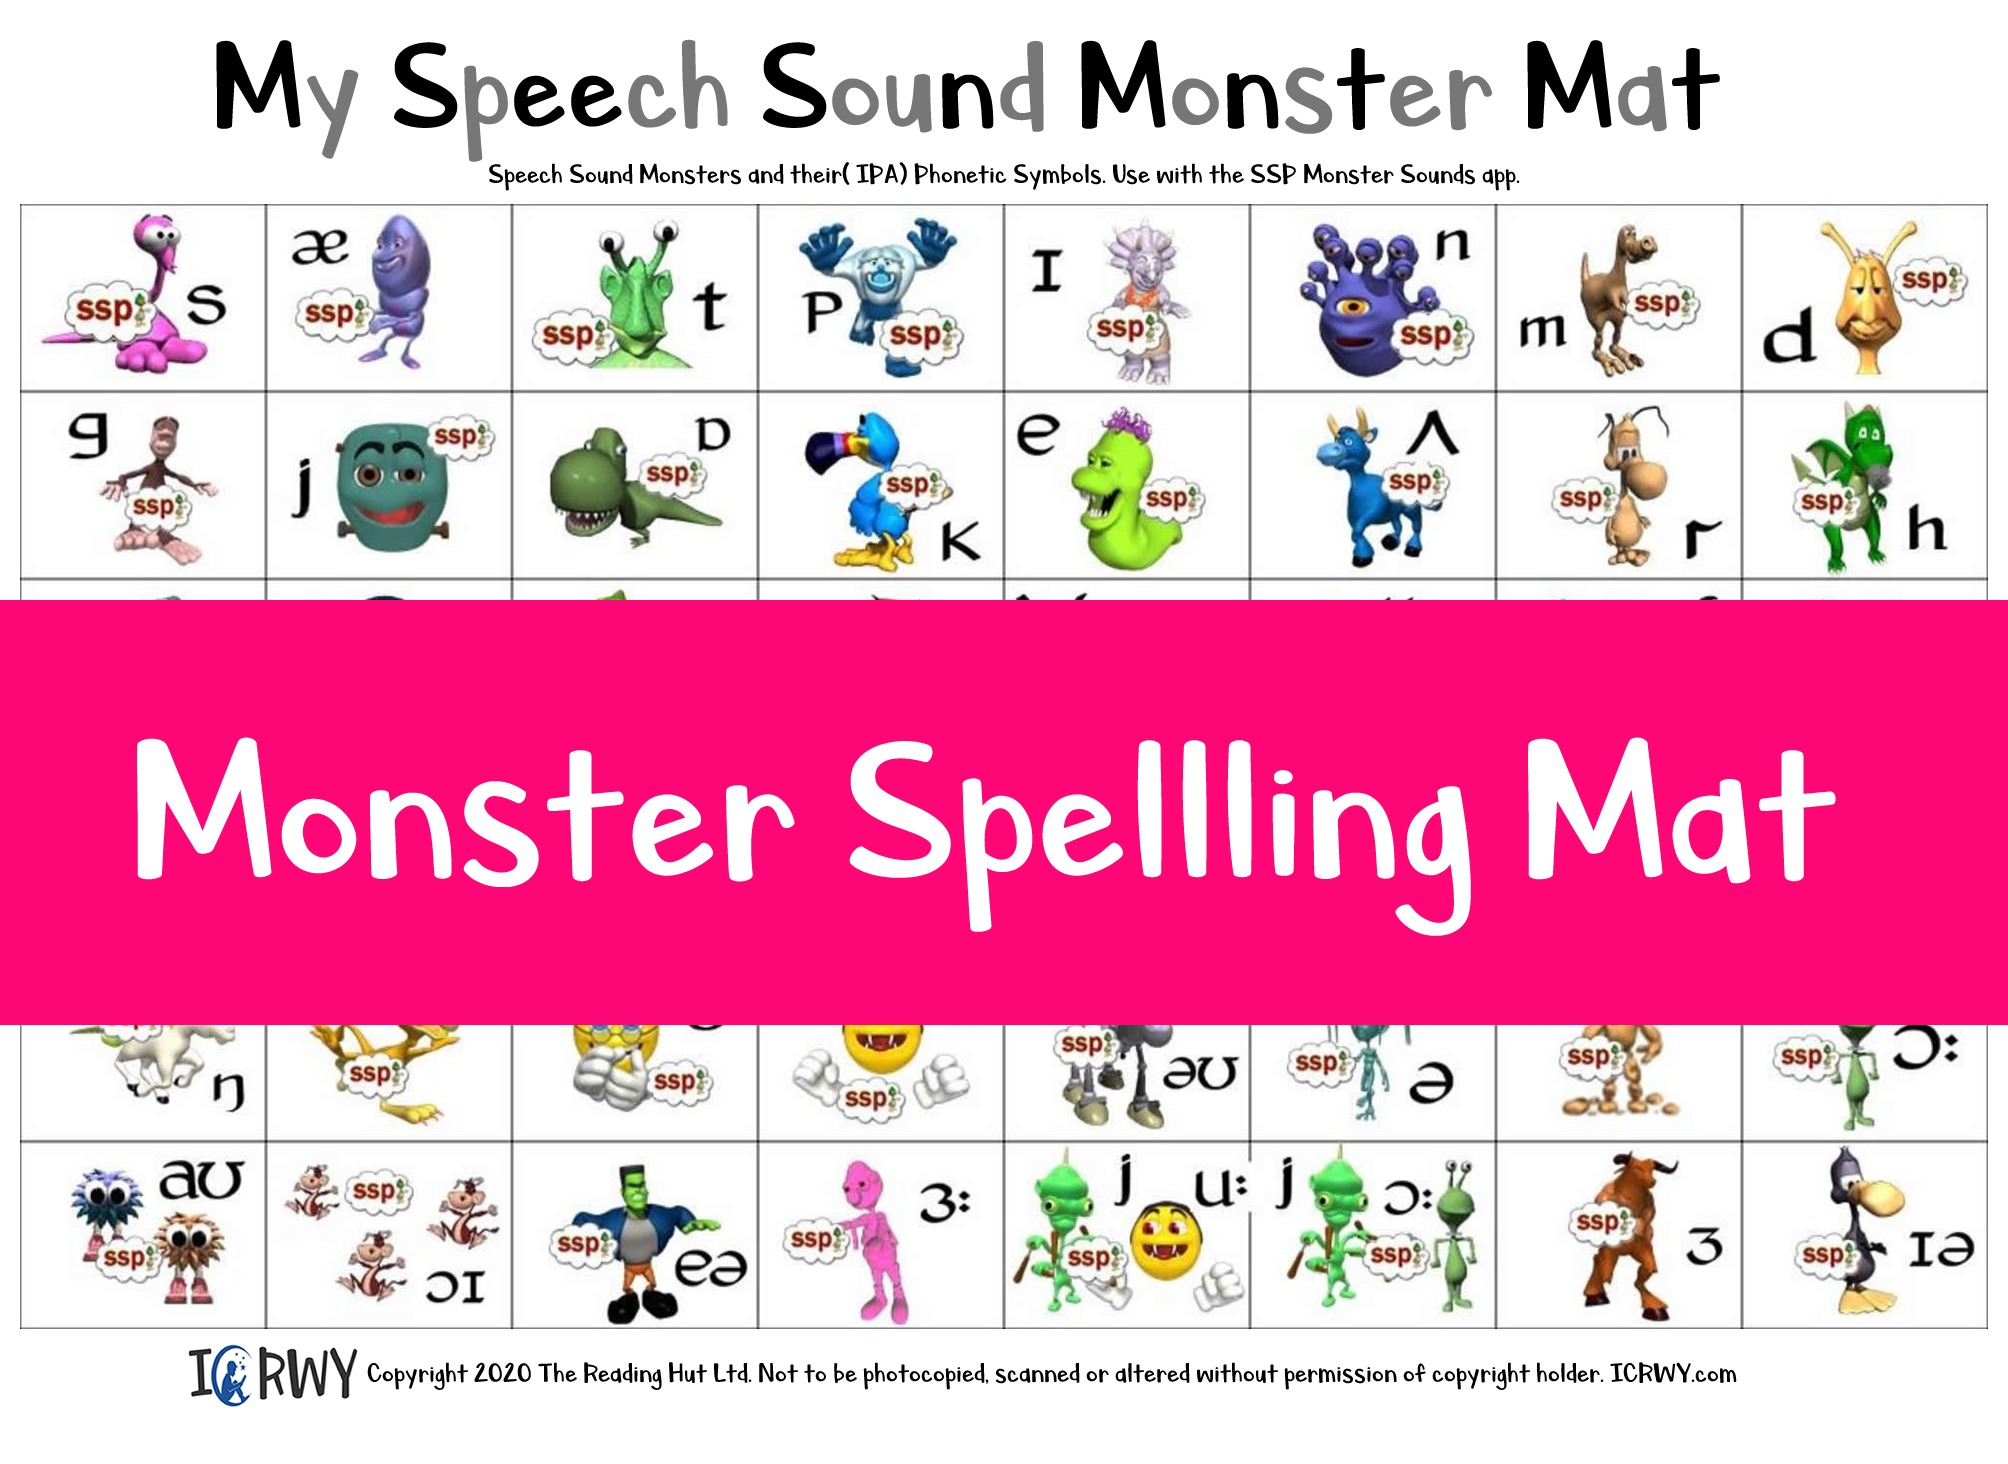 Ready-made Monster Mats - just cut one sheet, and add velcro dots! Pack of 15 - AU Delivery only